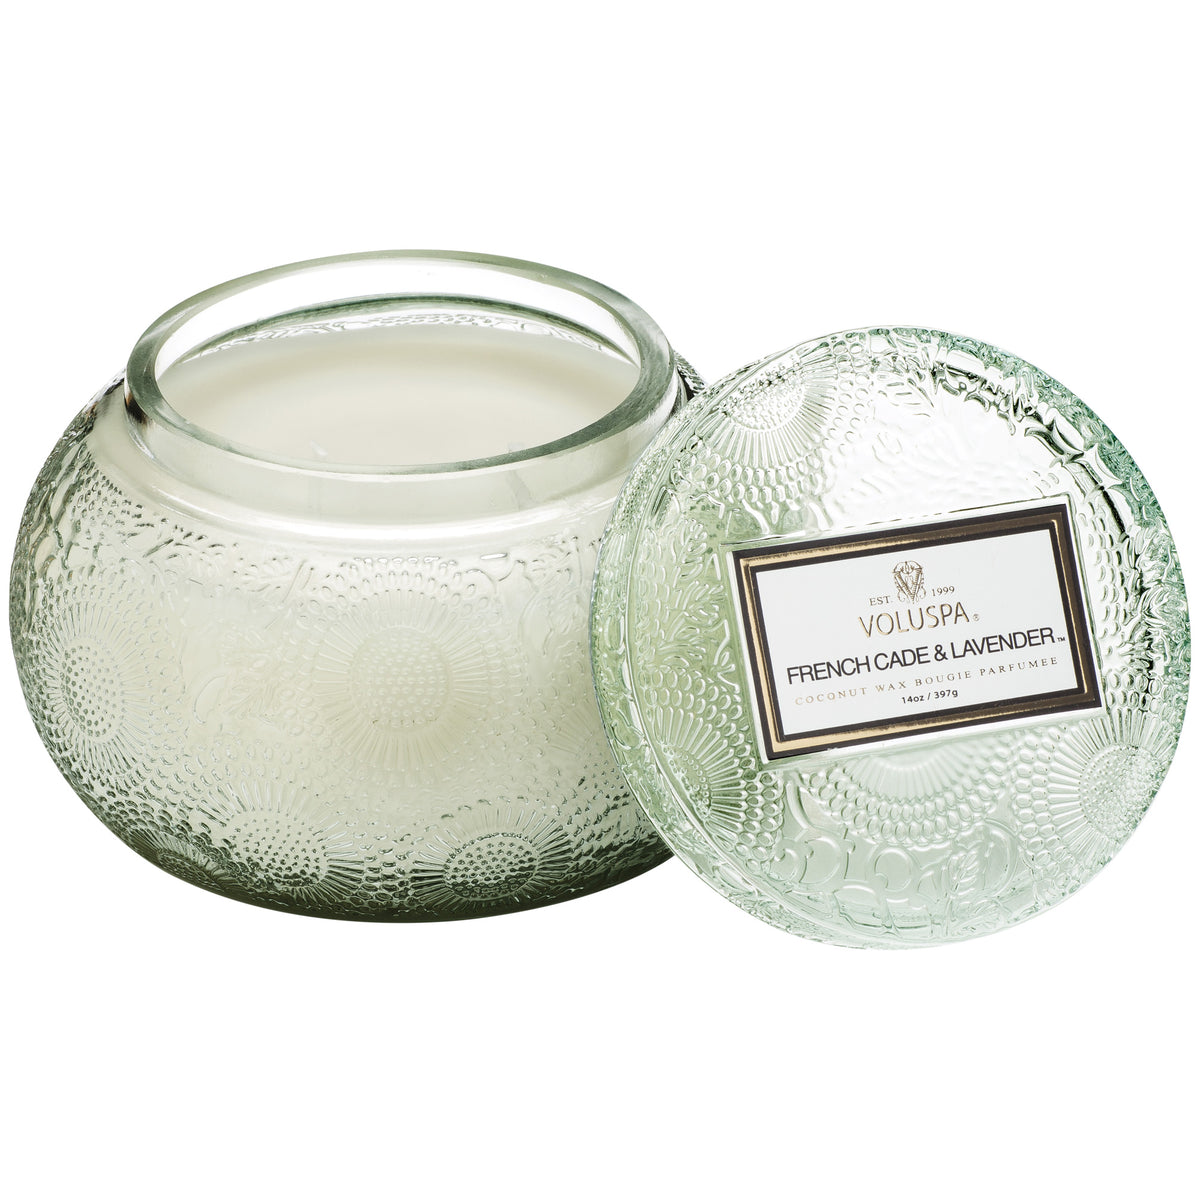 French Cade Lavender - Chawan Bowl Candle - 1